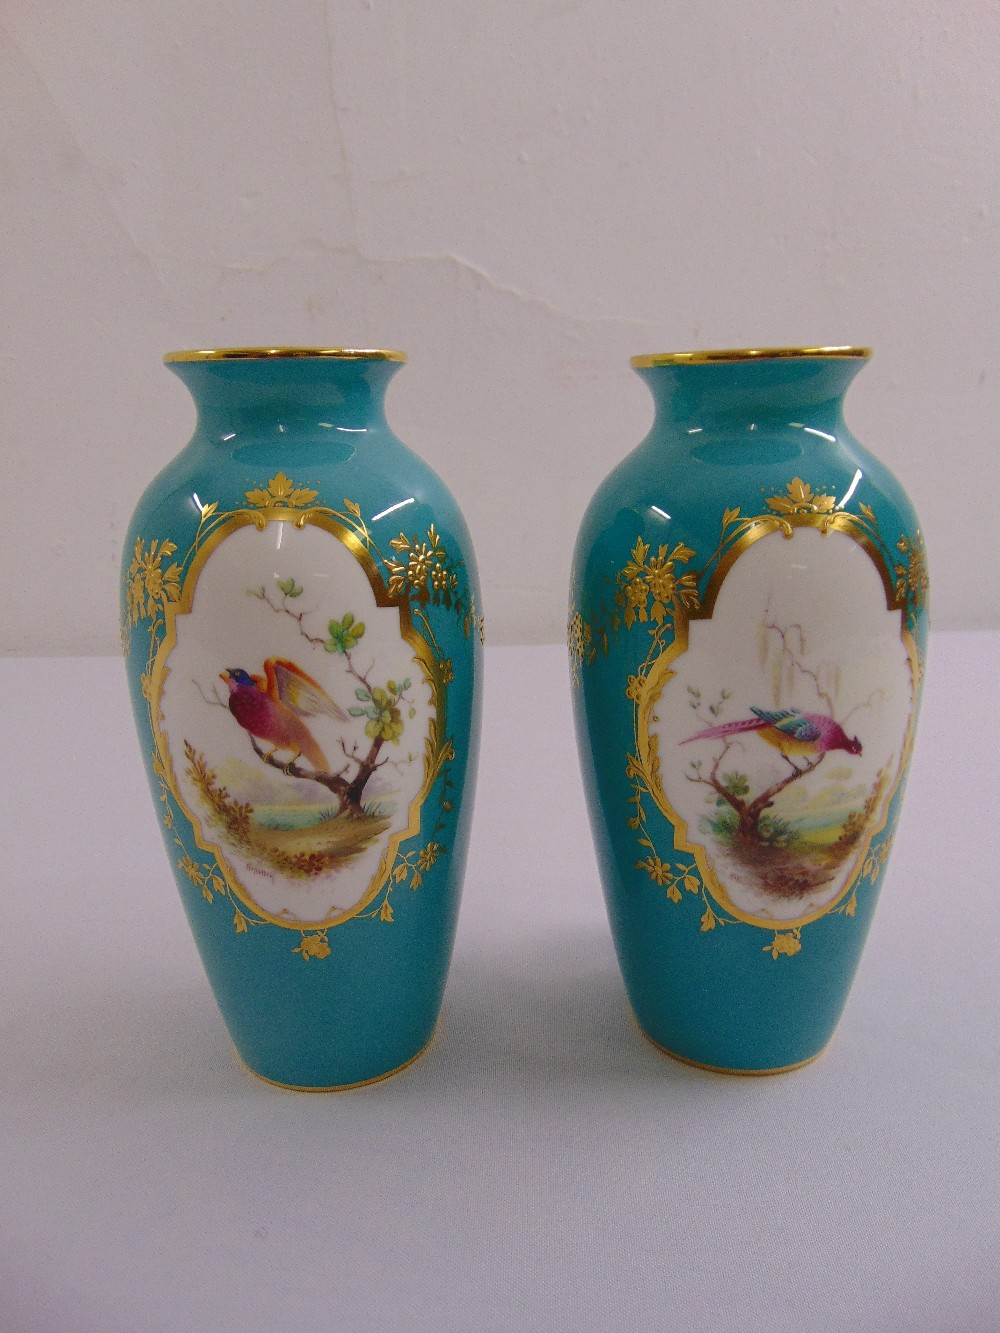 Lot 116 - A pair of early 20th century Minton baluster form vases decorated with stylised exotic birds,